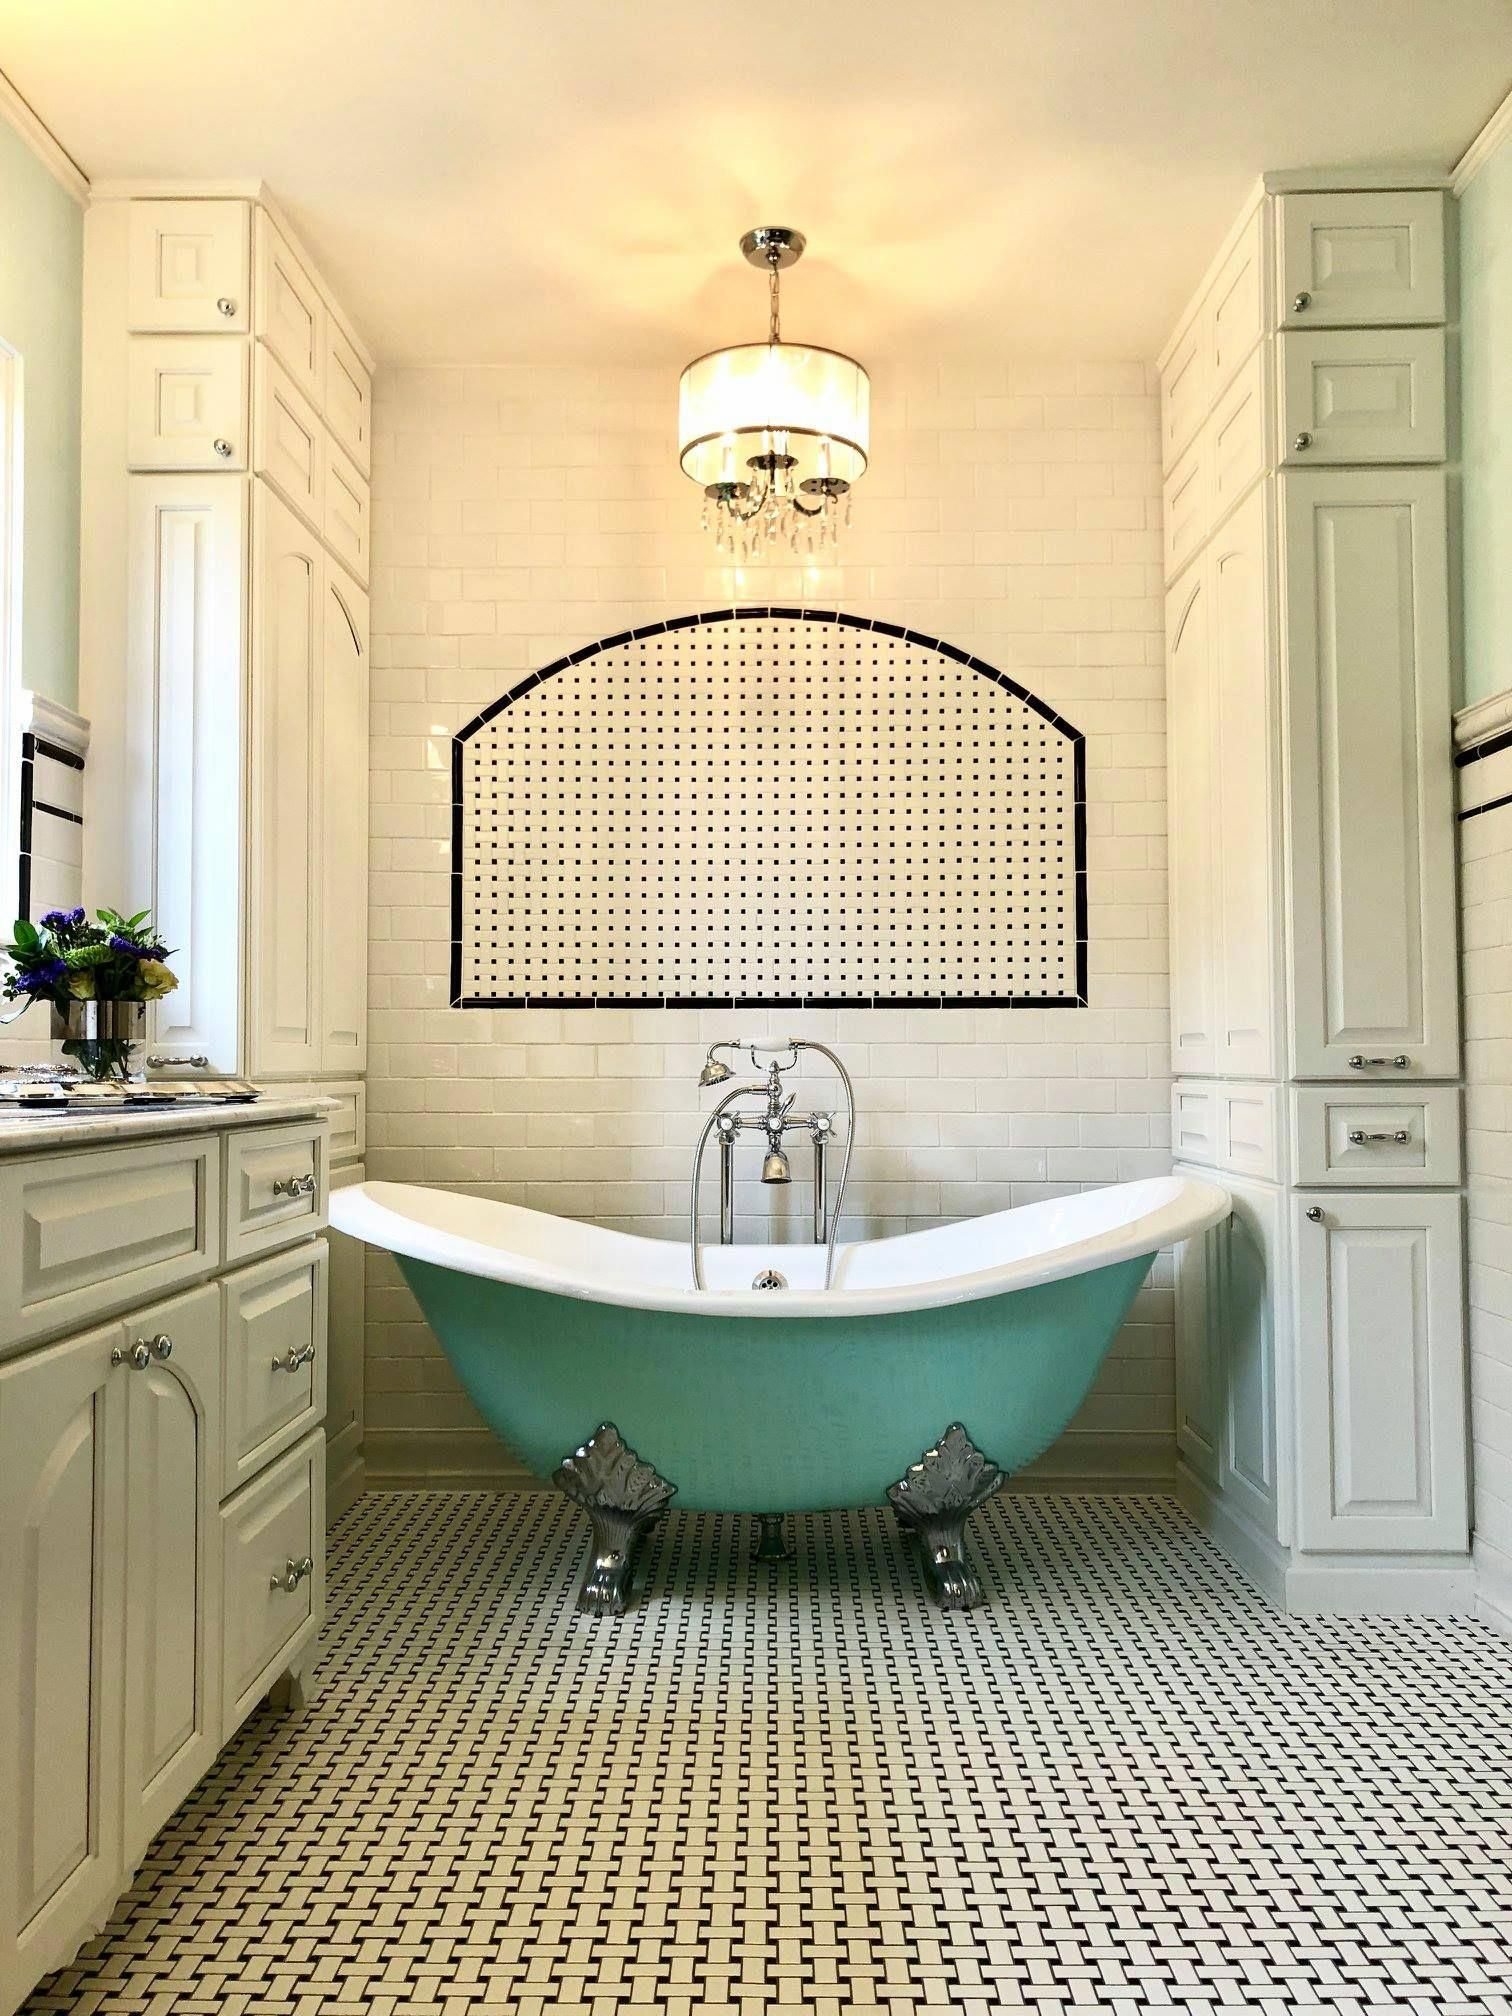 The Dunstable68 68 Cast Iron Double Slipper Clawfoot Tub With